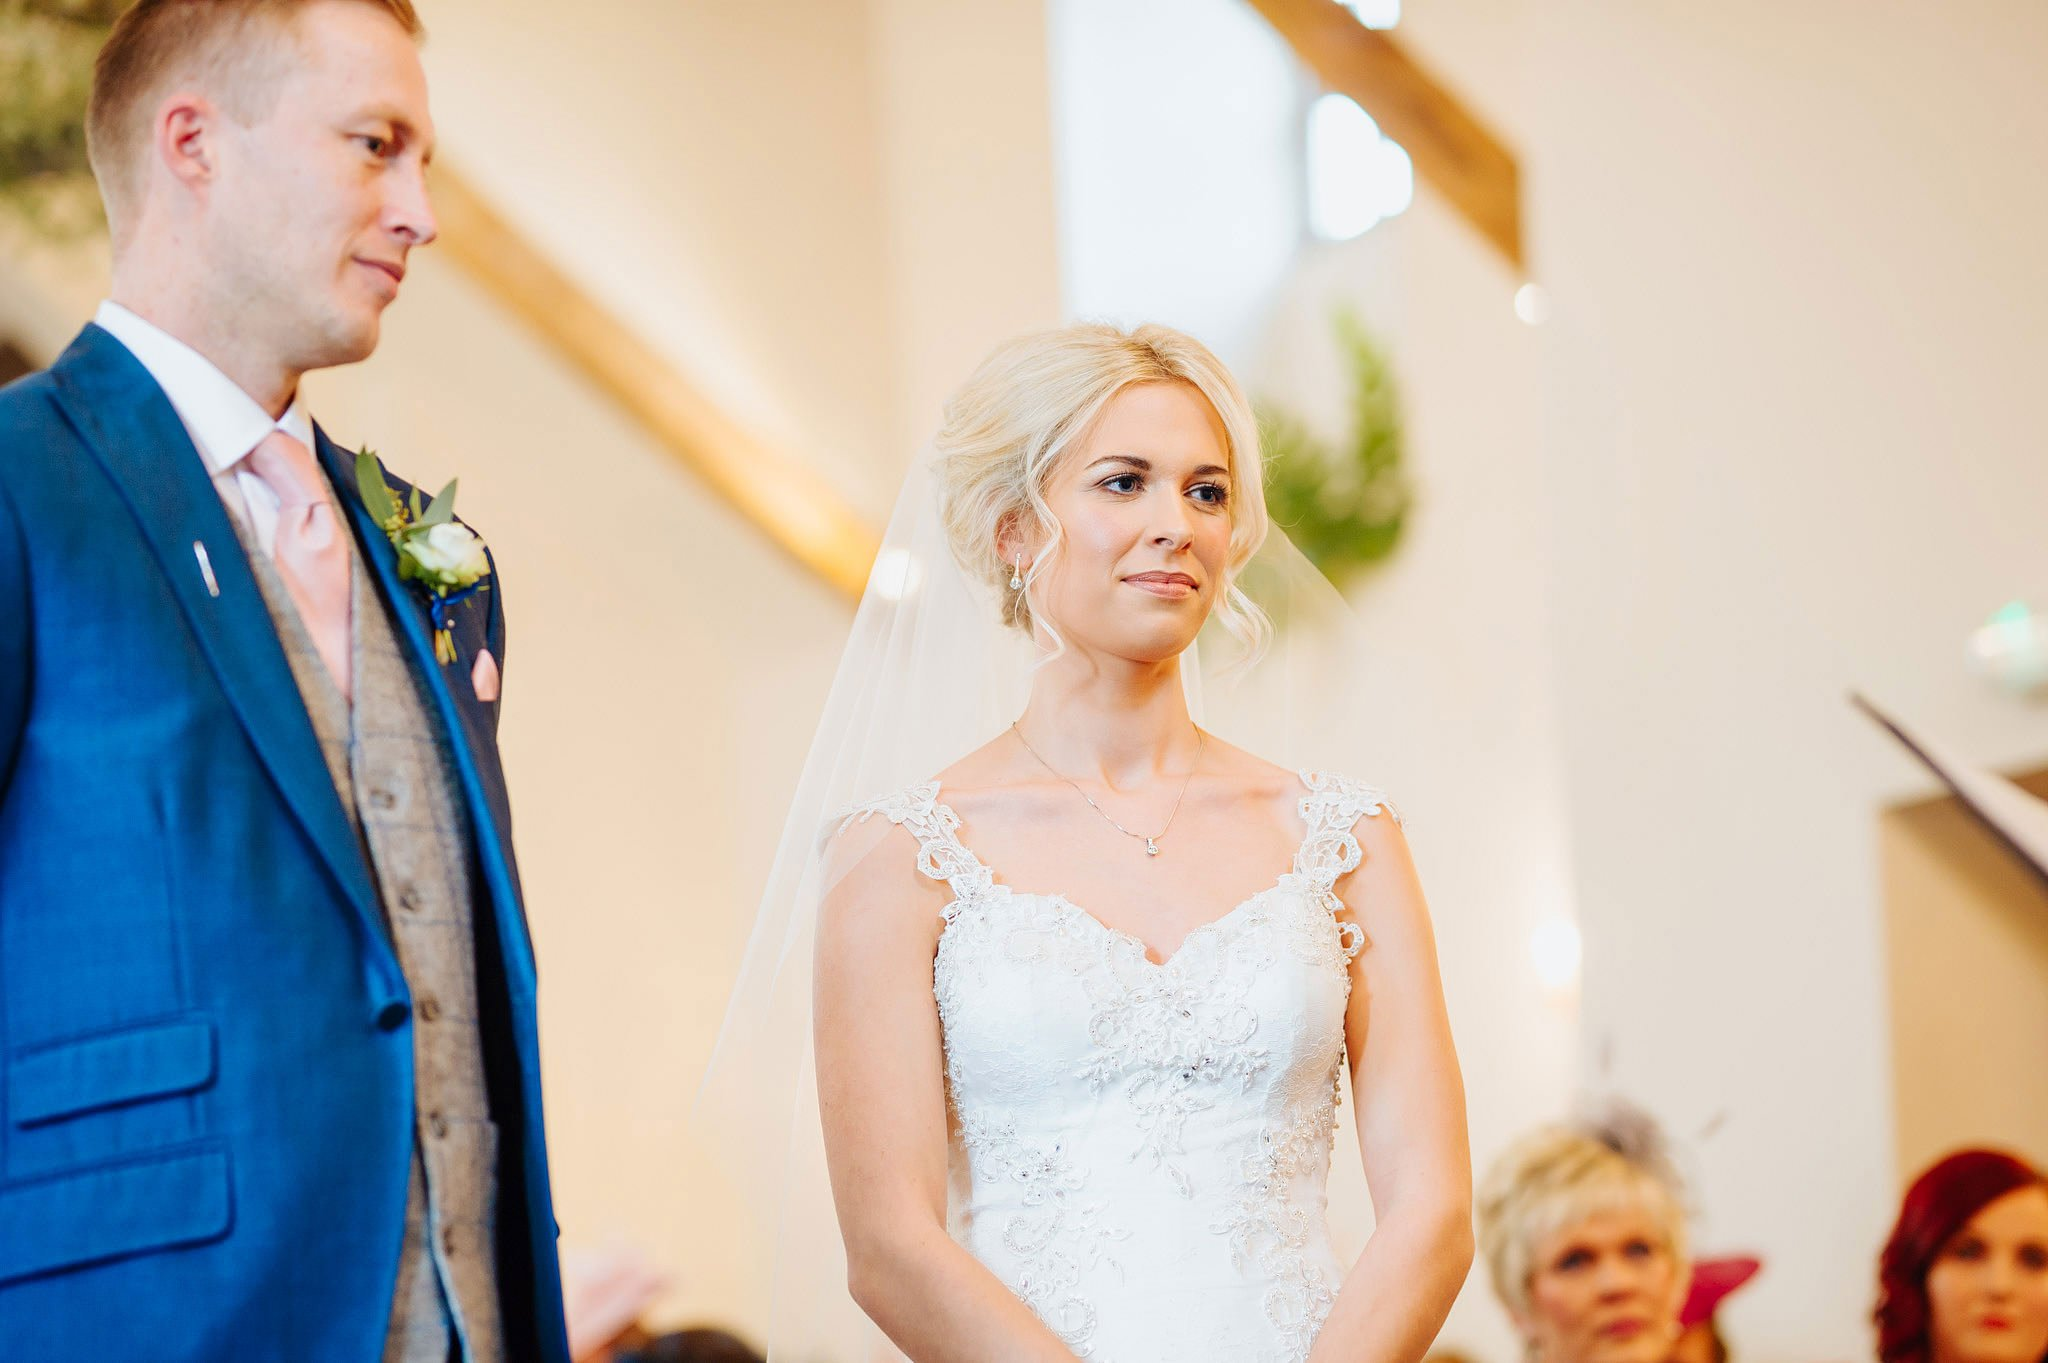 sigma 85mm art review wedding photography 101 - Sigma 85mm F1.4 ART review vs Wedding Photography